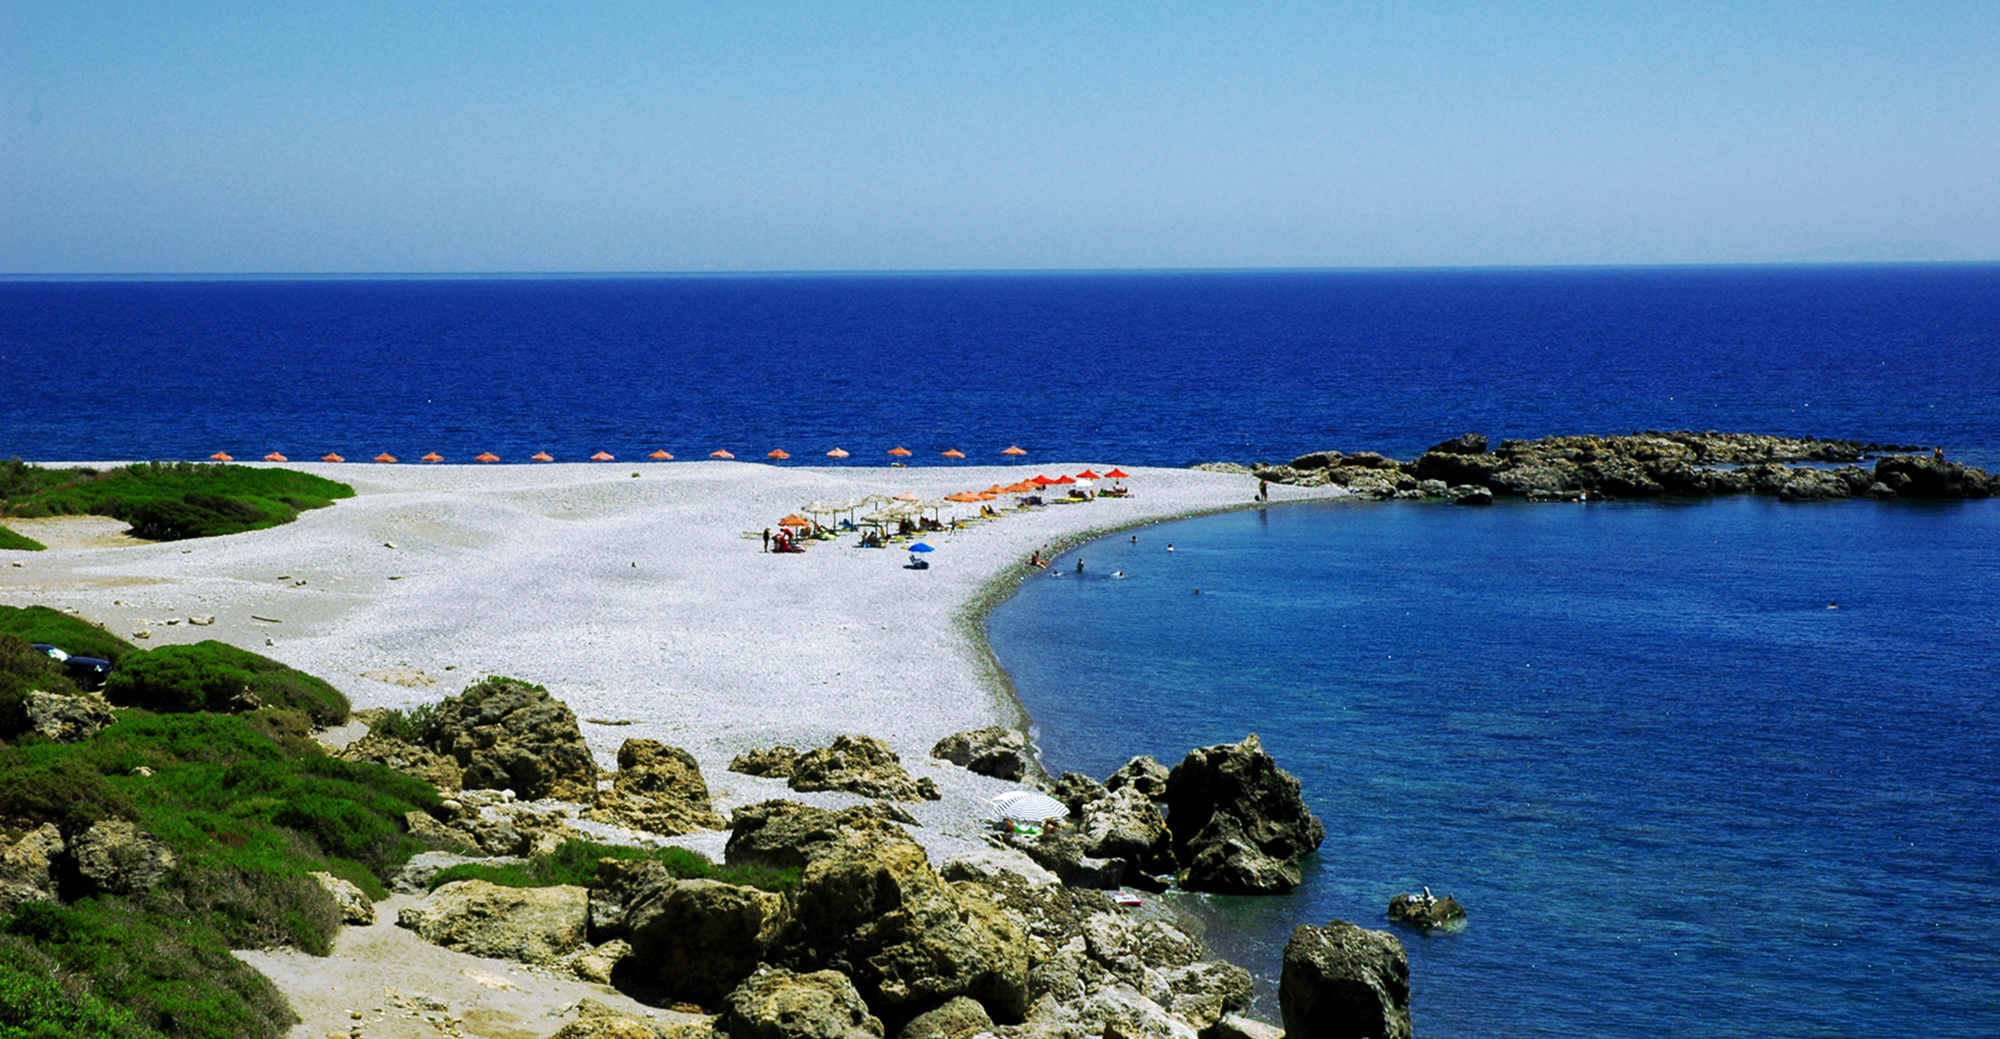 Gialiskari Beach in Crete